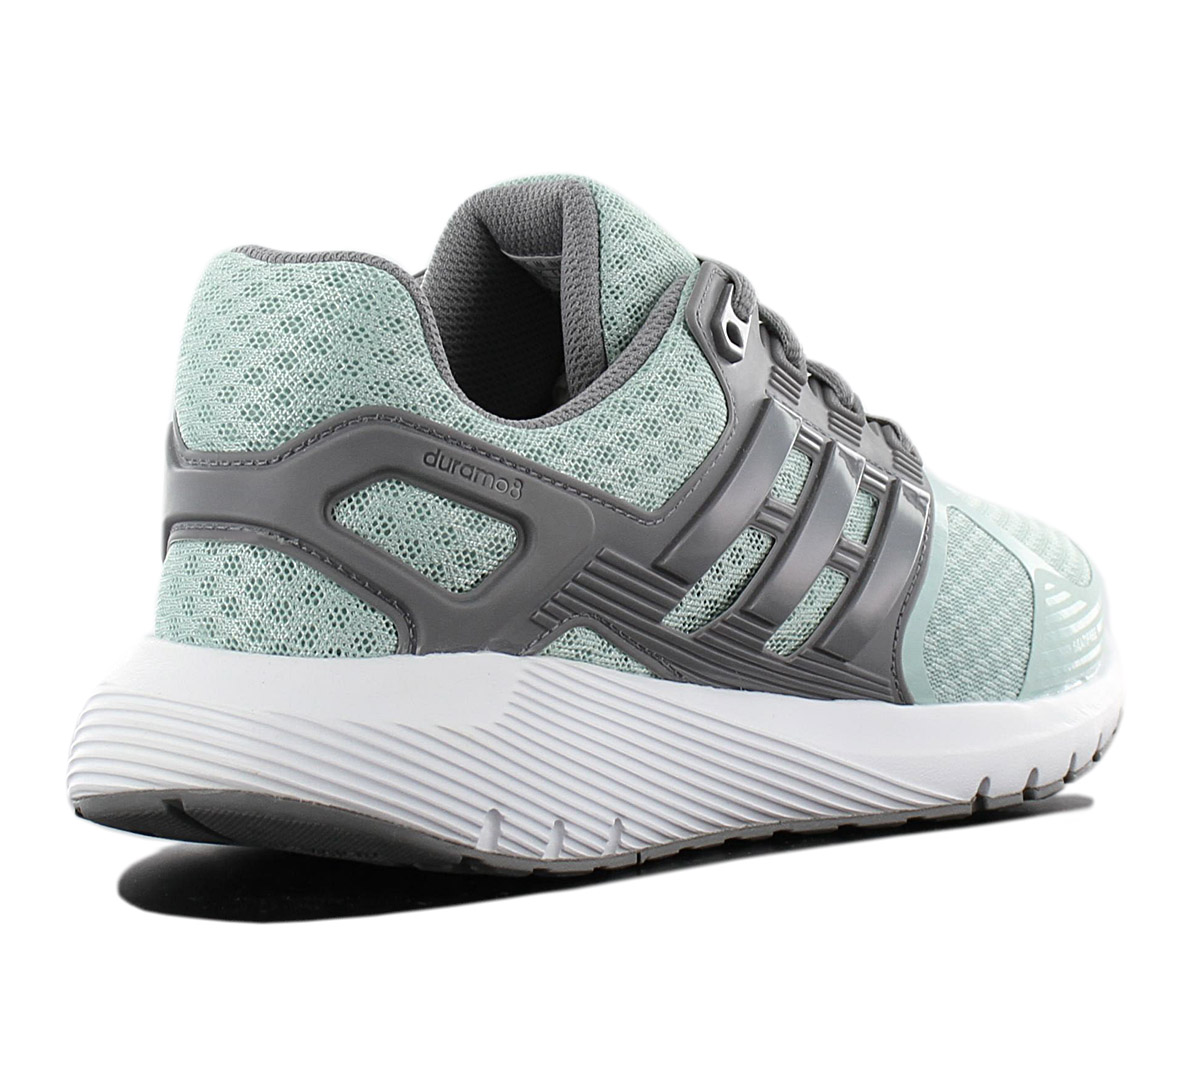 Details about Adidas Duramo 8 W Women's Running Shoes CP8754 Green Sport  Fitness New